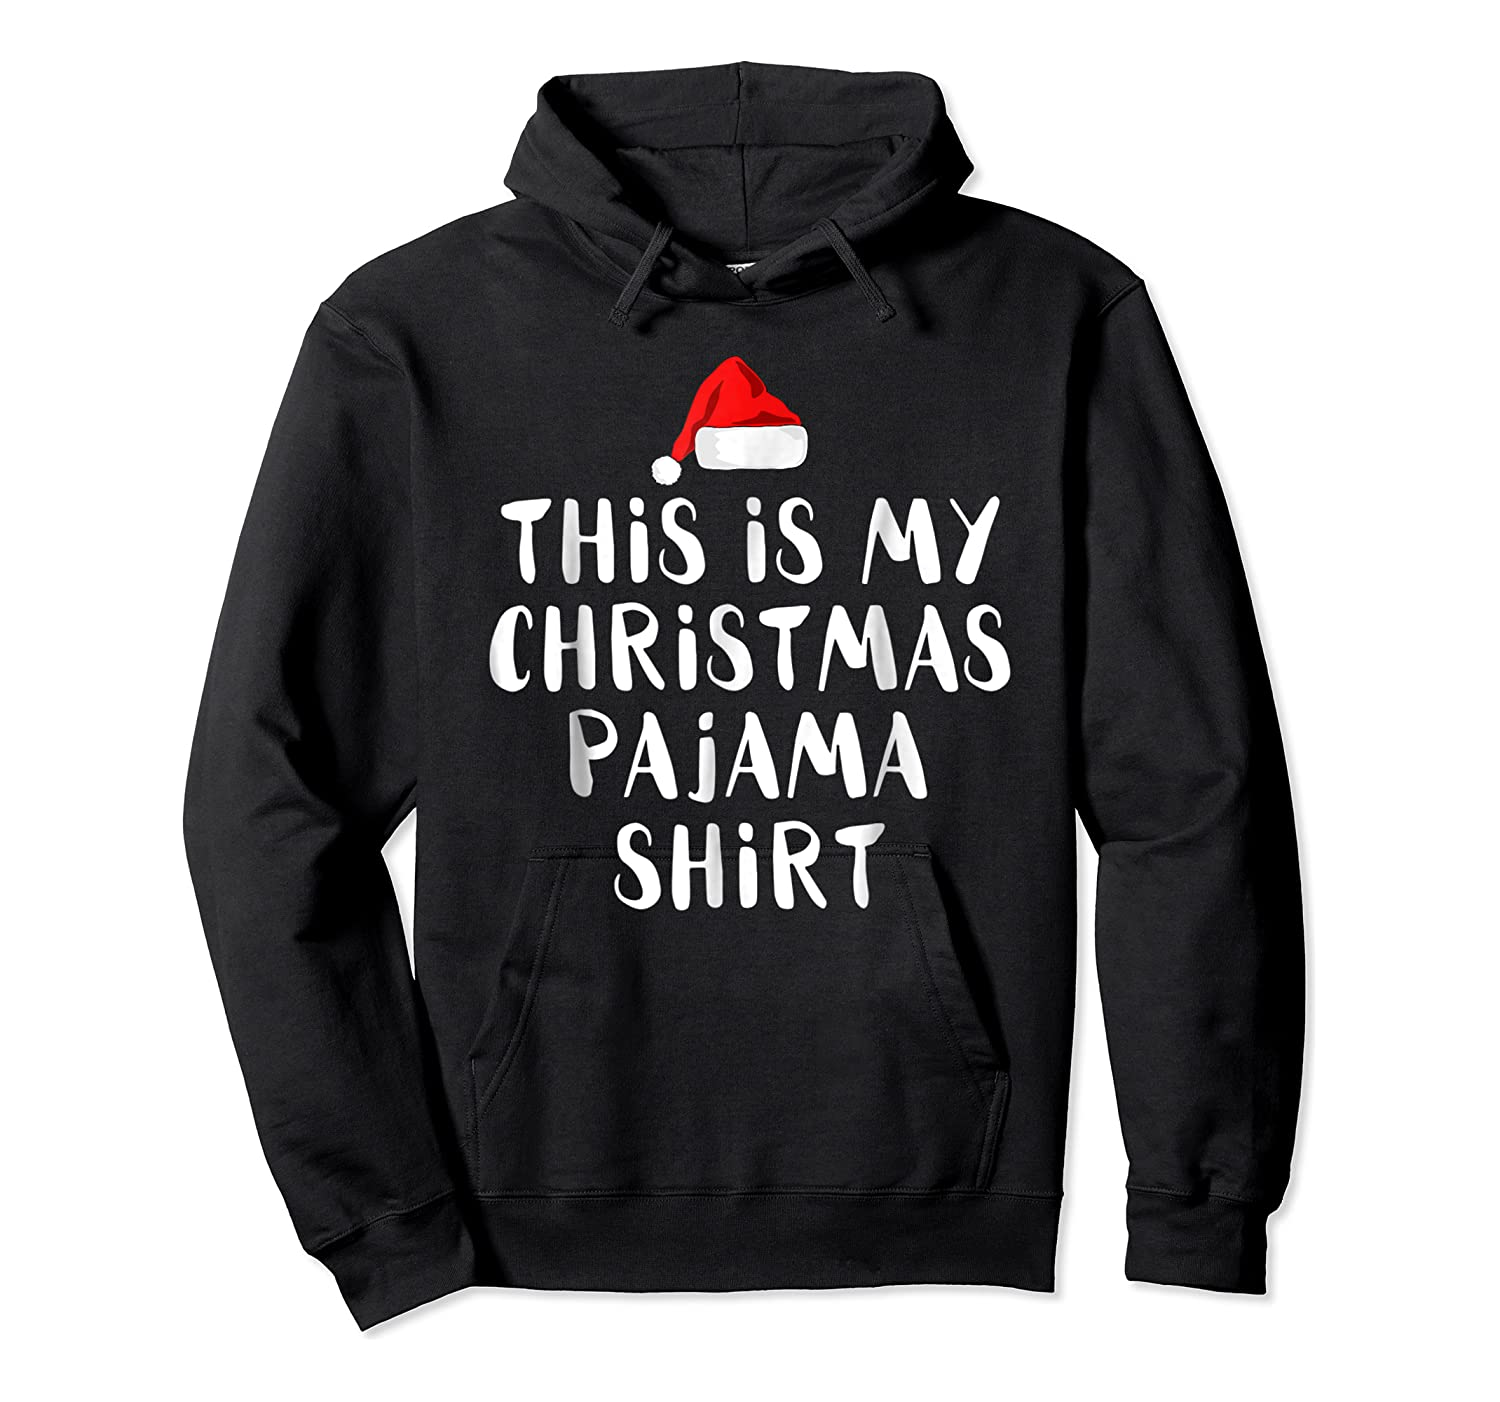 This Is My Christmas Pajama Funny Christmas Shirts Unisex Pullover Hoodie